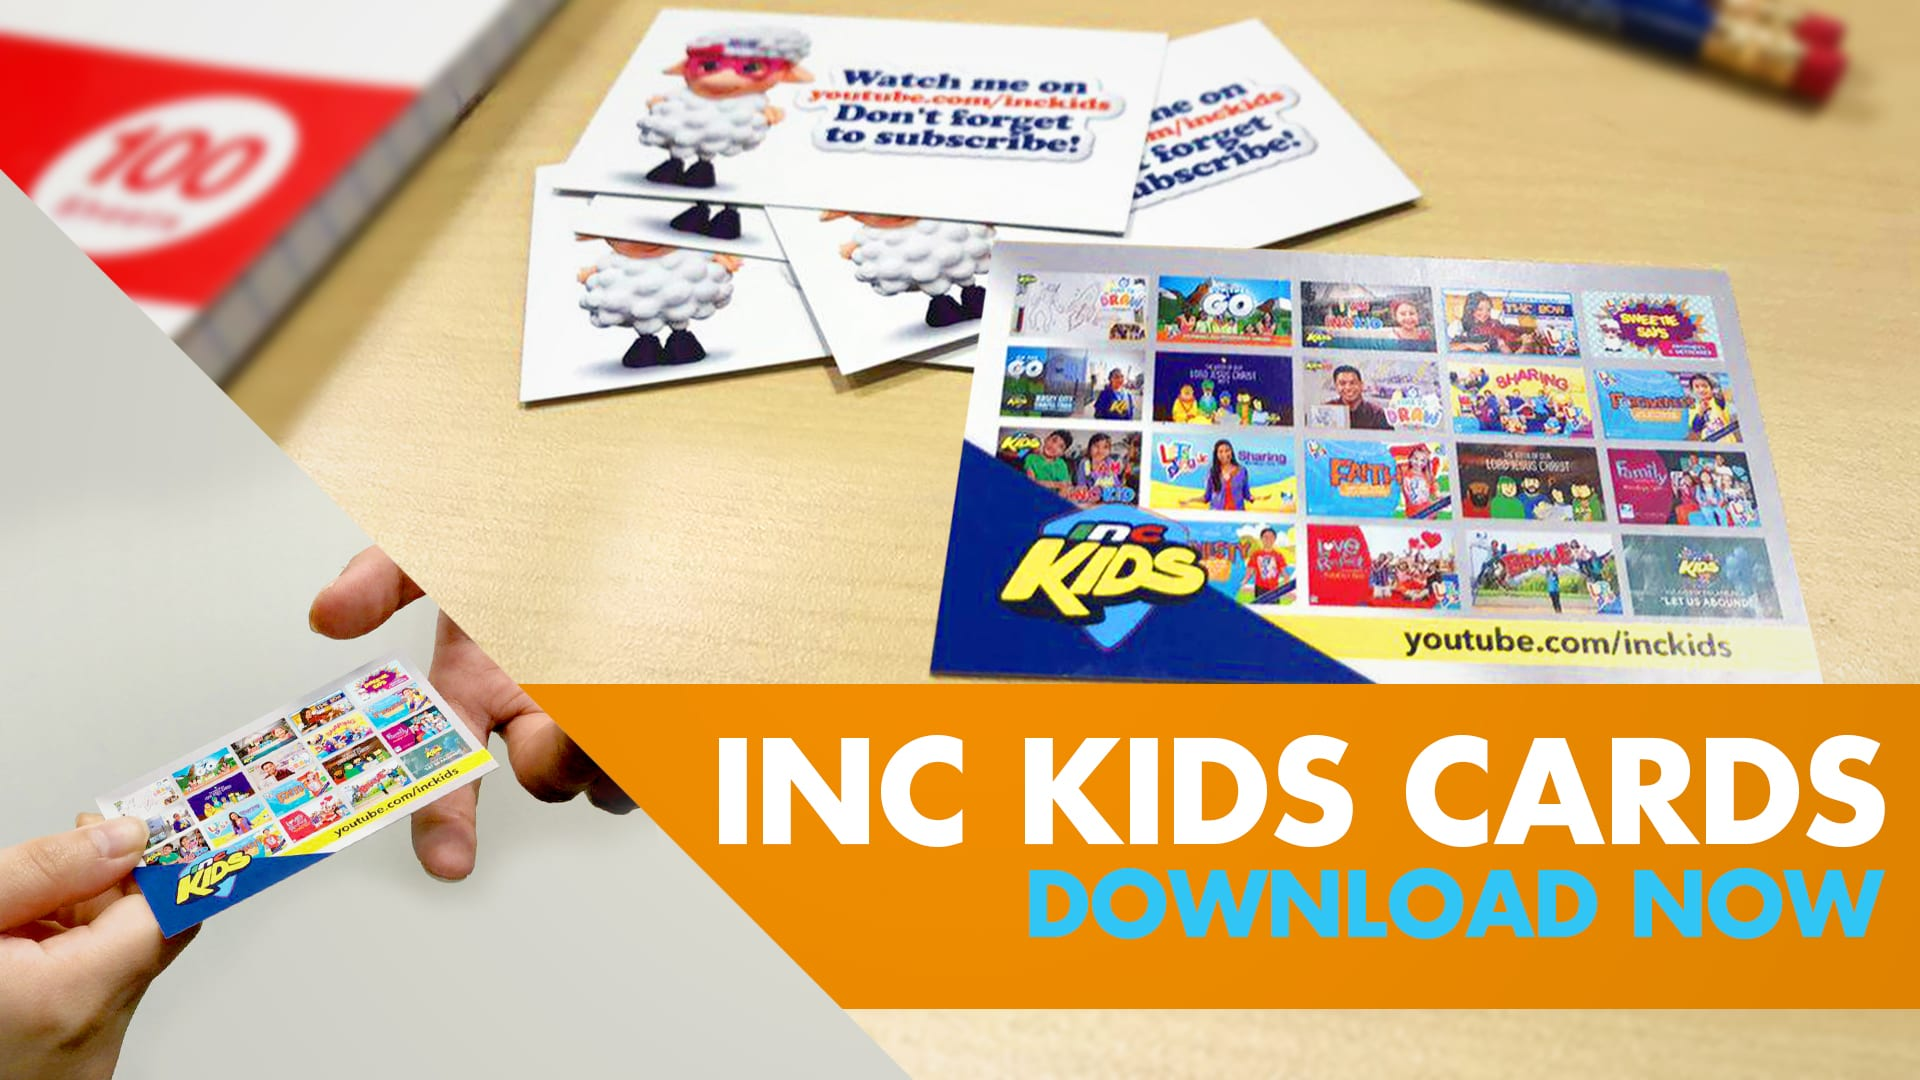 """""""INC Kids cards download now"""""""